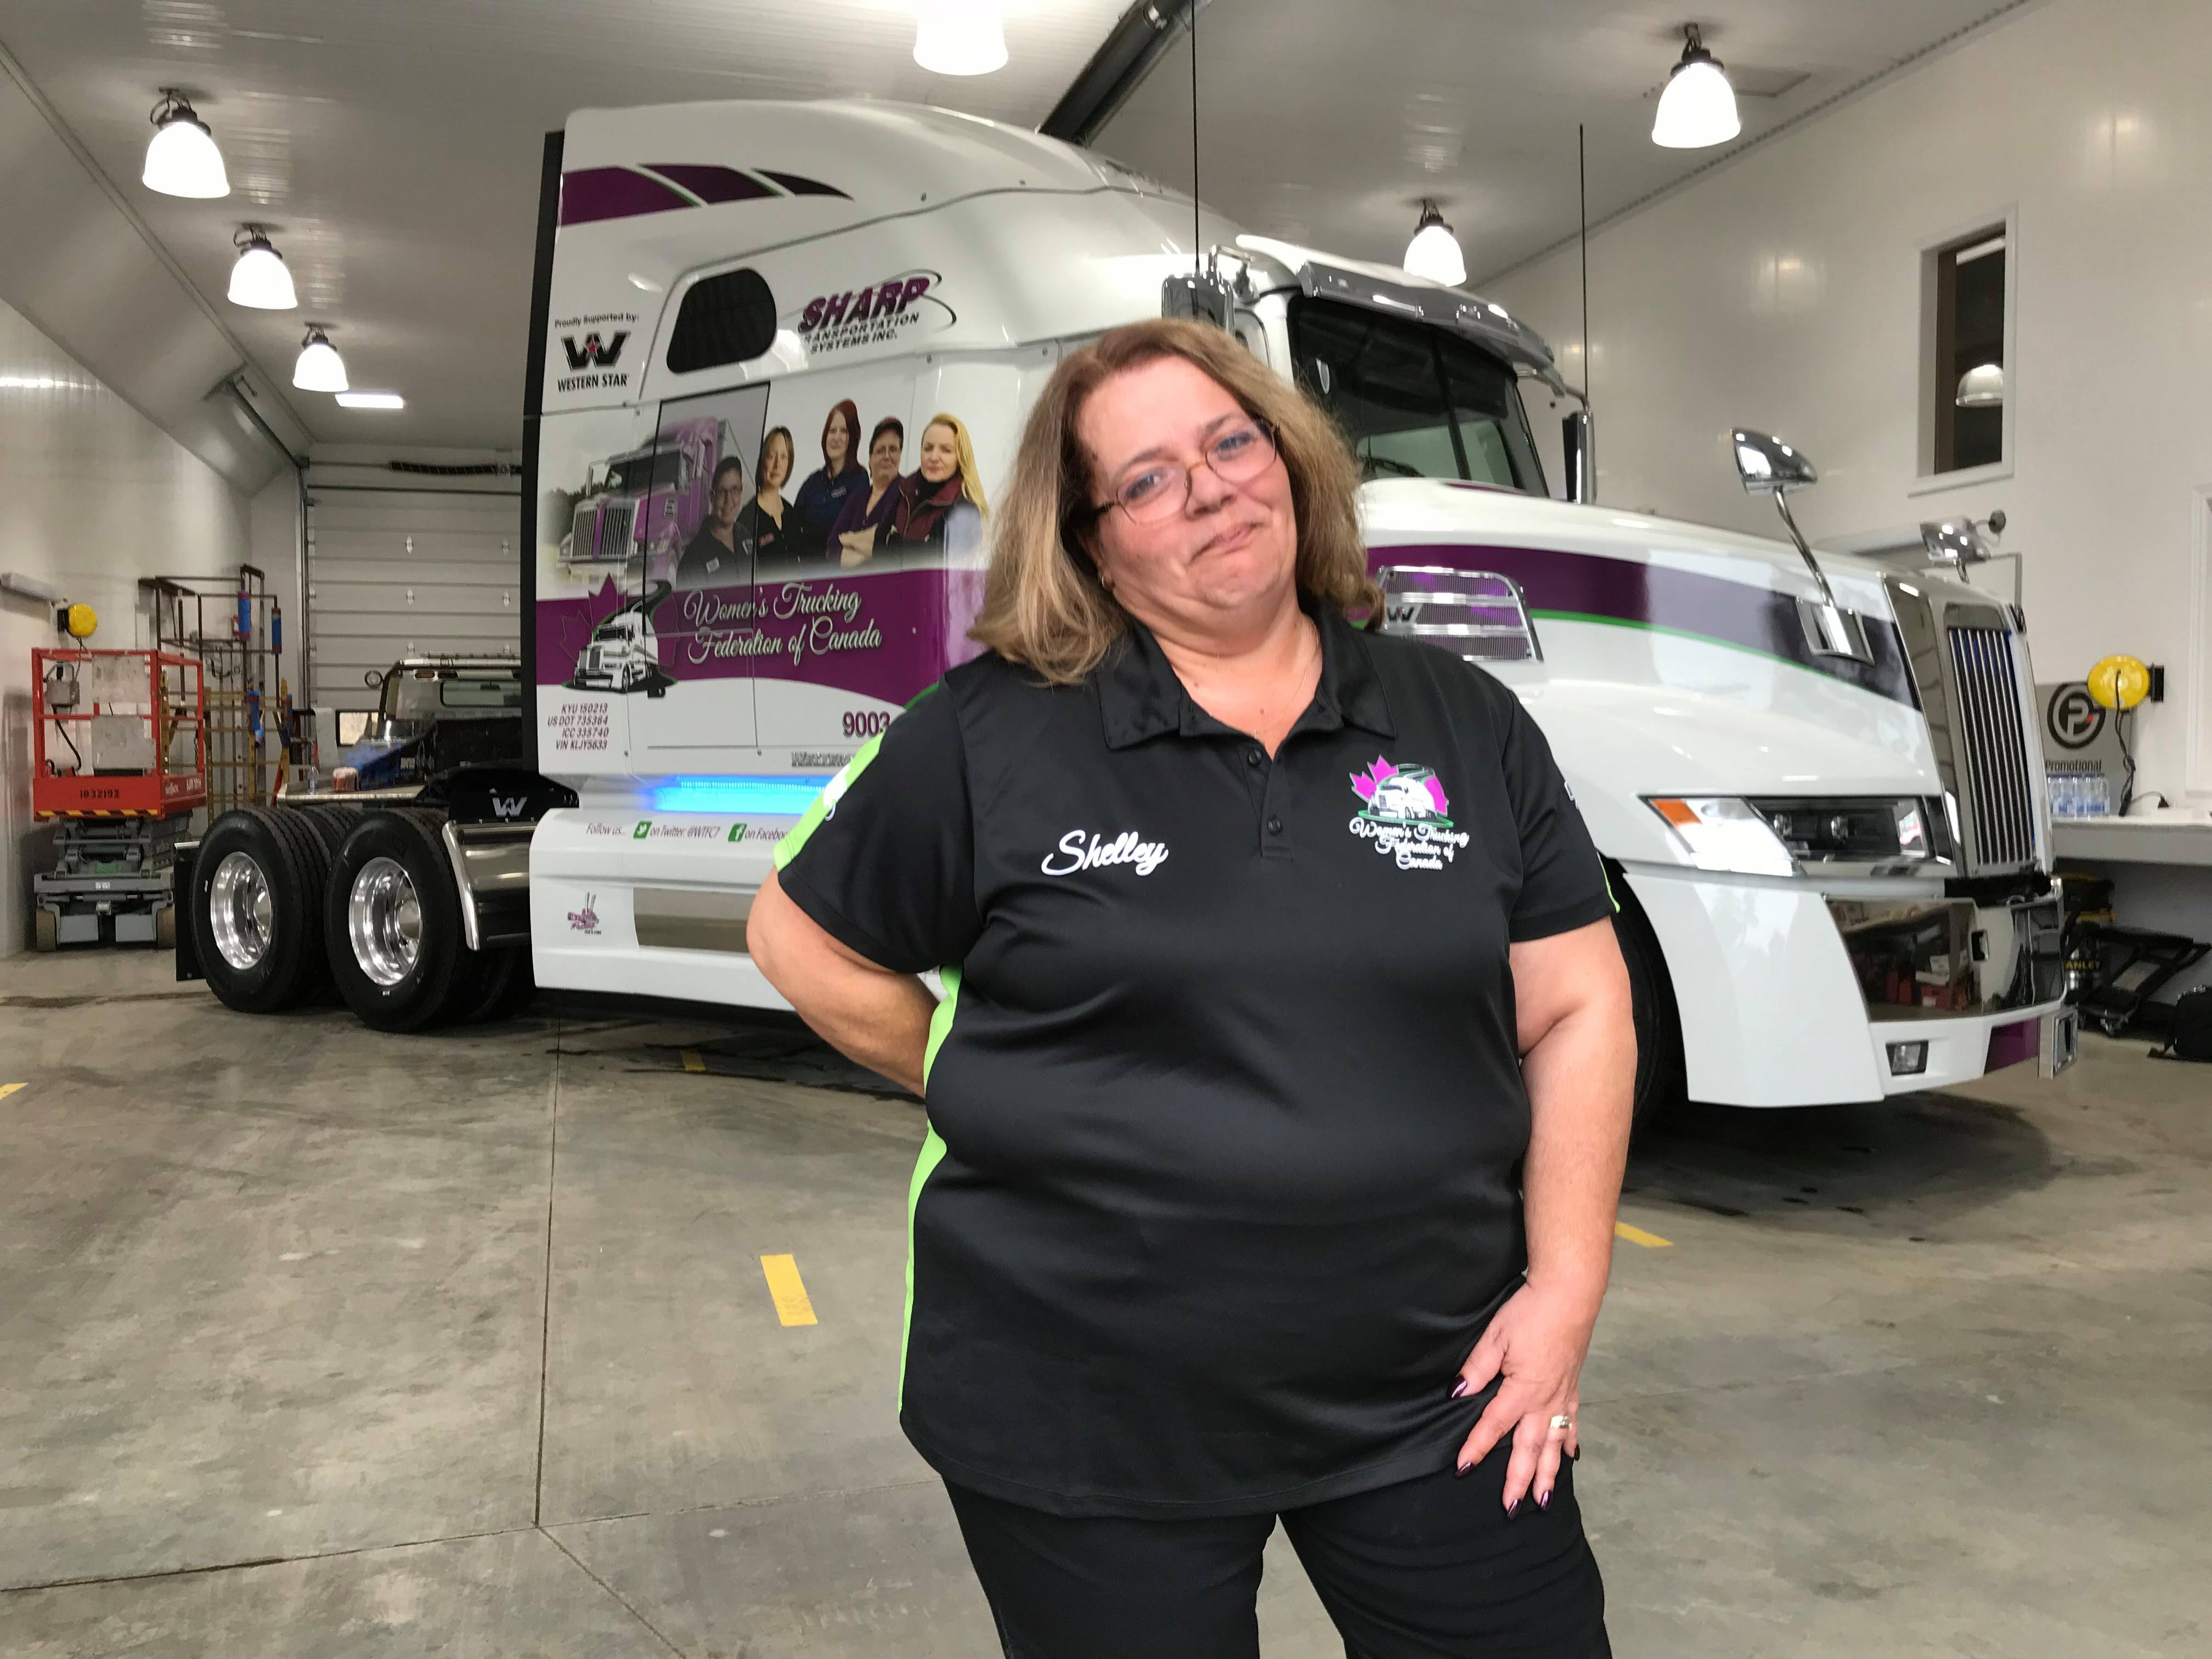 Shelley Uvanile-Hesch with her truck in the background